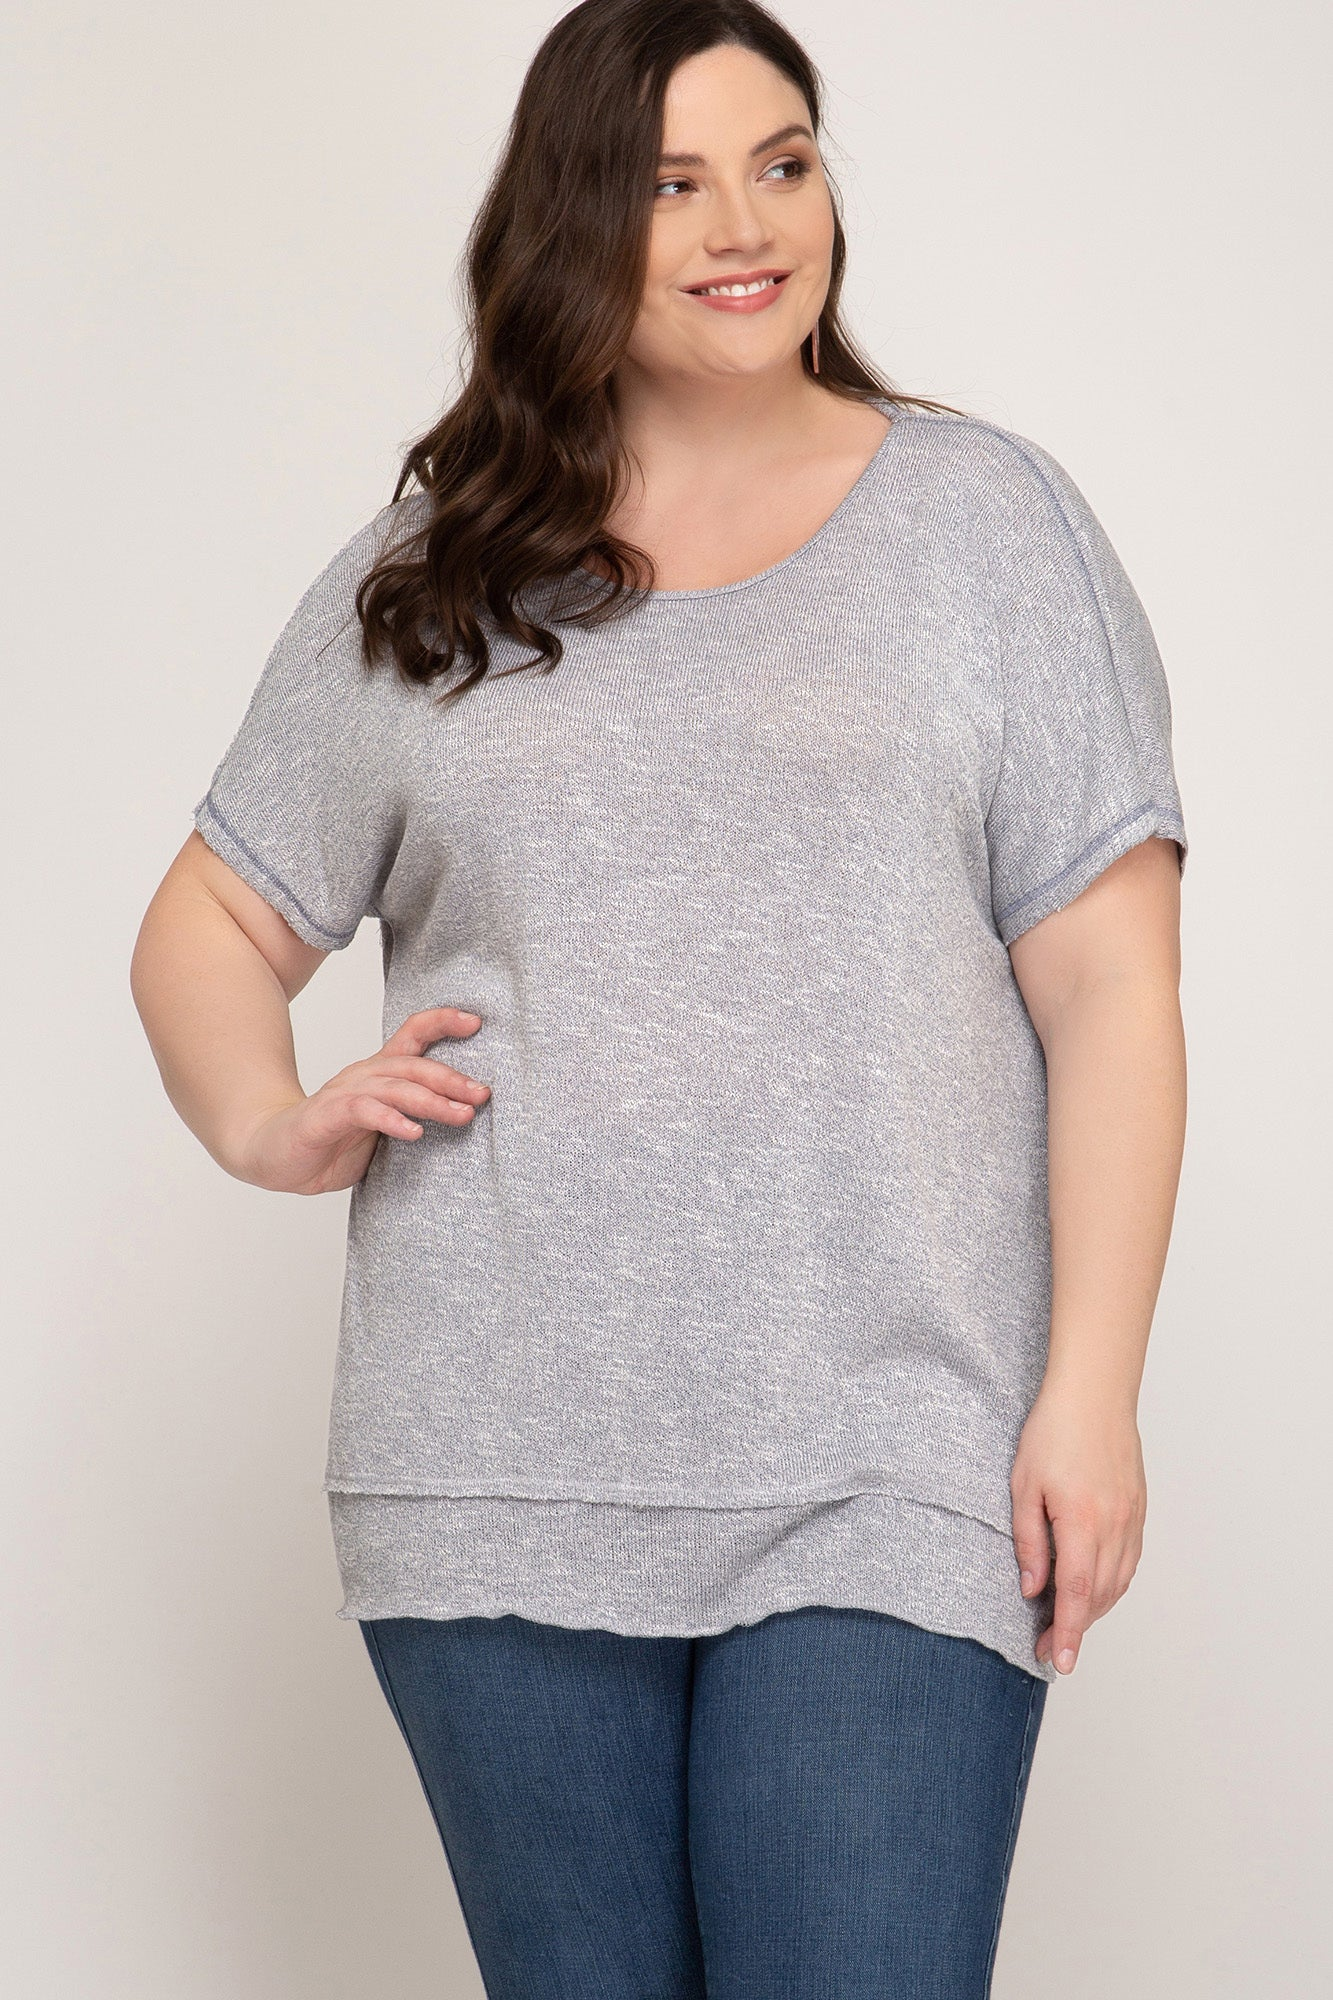 SHORT SLEEVE TOP WITH TWISTED OPEN BACK